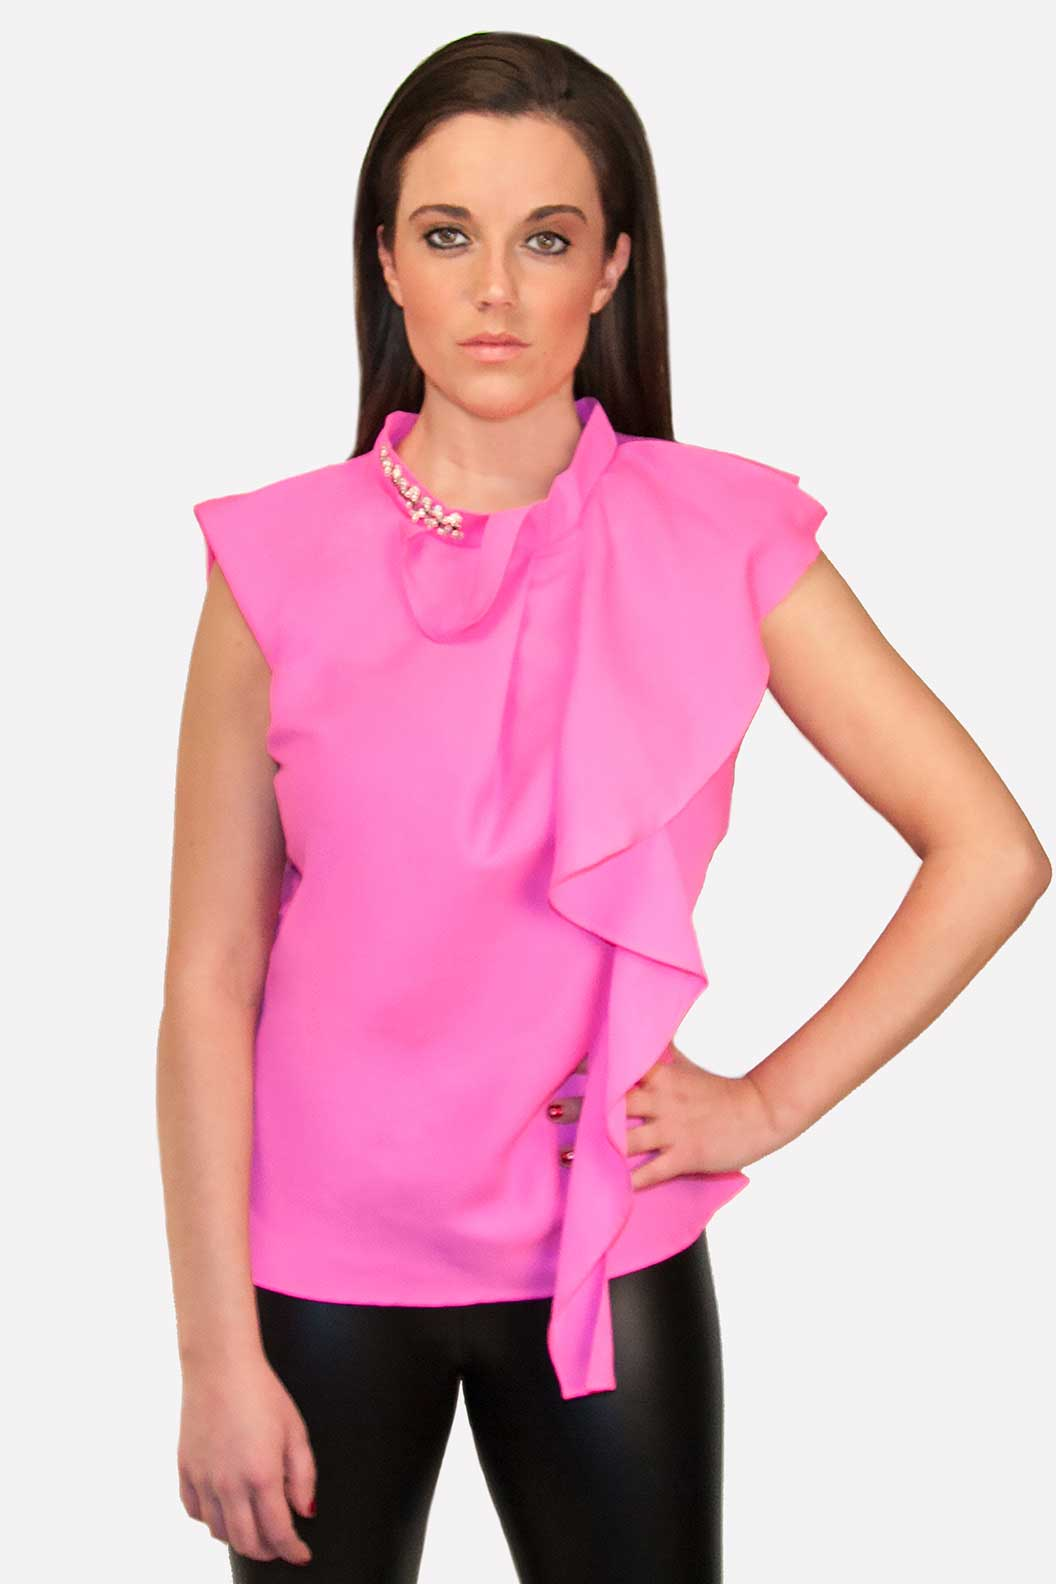 Look lively with this eye-catching Bit & Bridle Women's Tie-Dyed Blouse. Featuring a banded collar and Y-neck design you can comfortably wear this affordable garment at all your casual occasions. Banded Collar Y-neck with decorative shank buttons5/5(3).